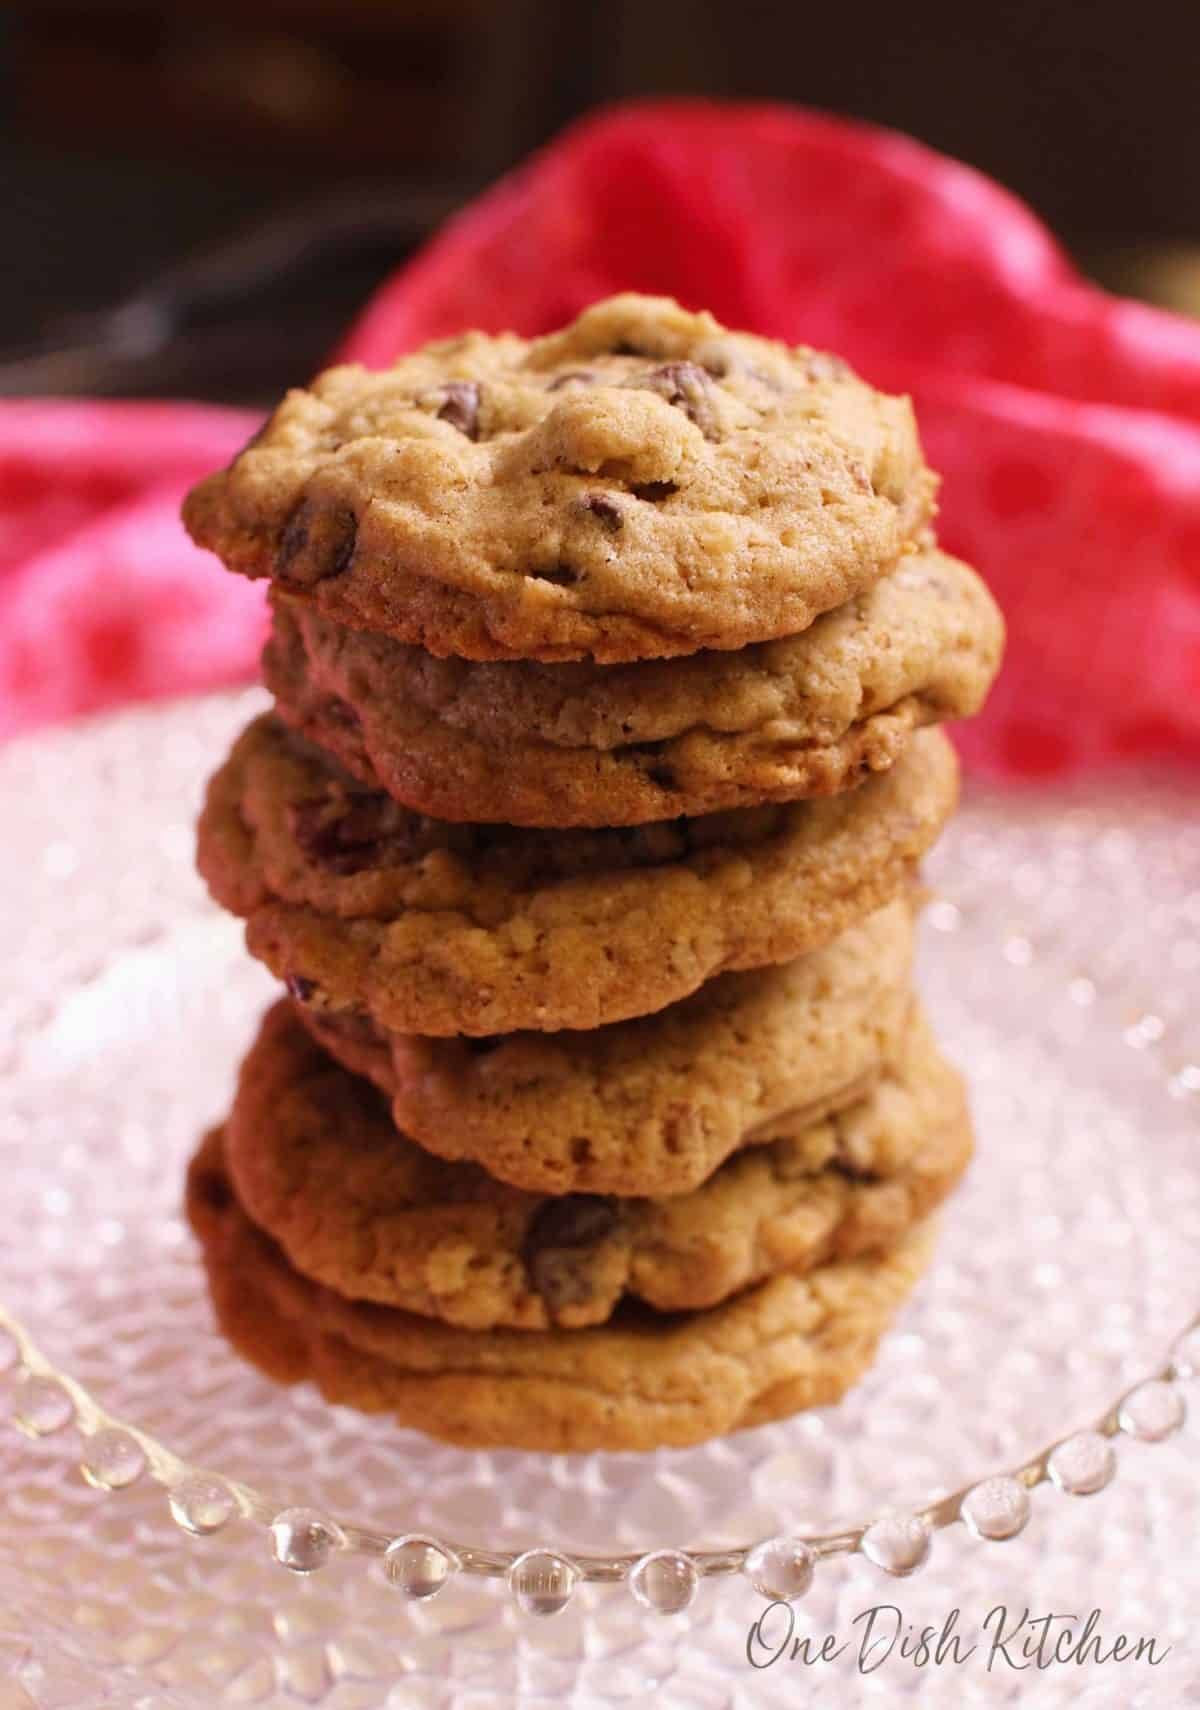 A stack of six doubletree cookies on a small plate